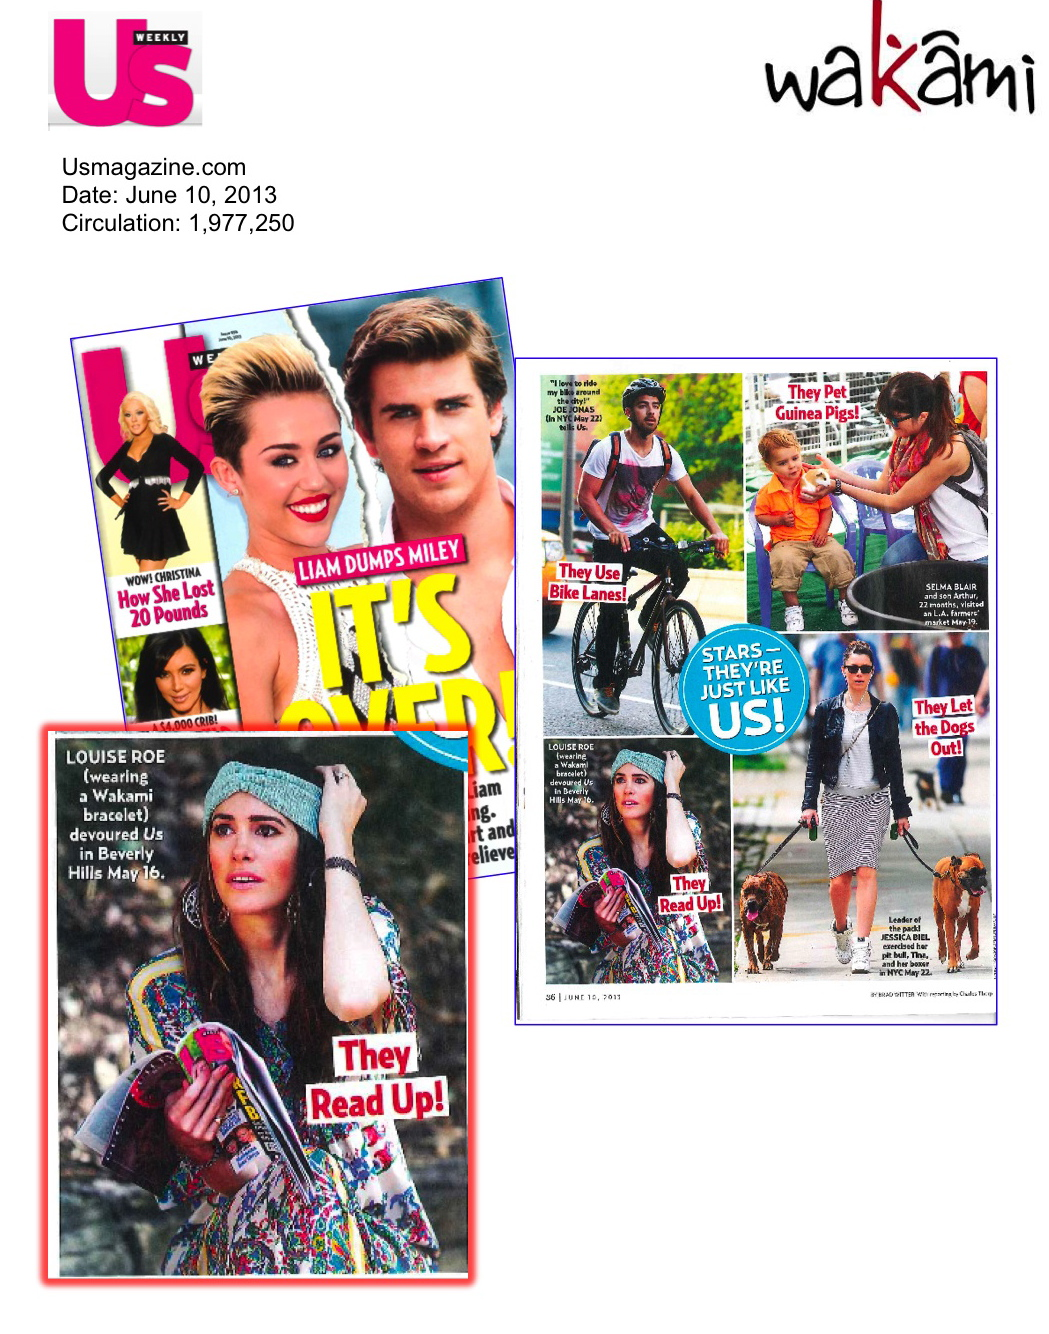 LouiseRoe wearing Wakami is Us Weekly (use with photos - each set up has photos and a magaizne shot.jpg